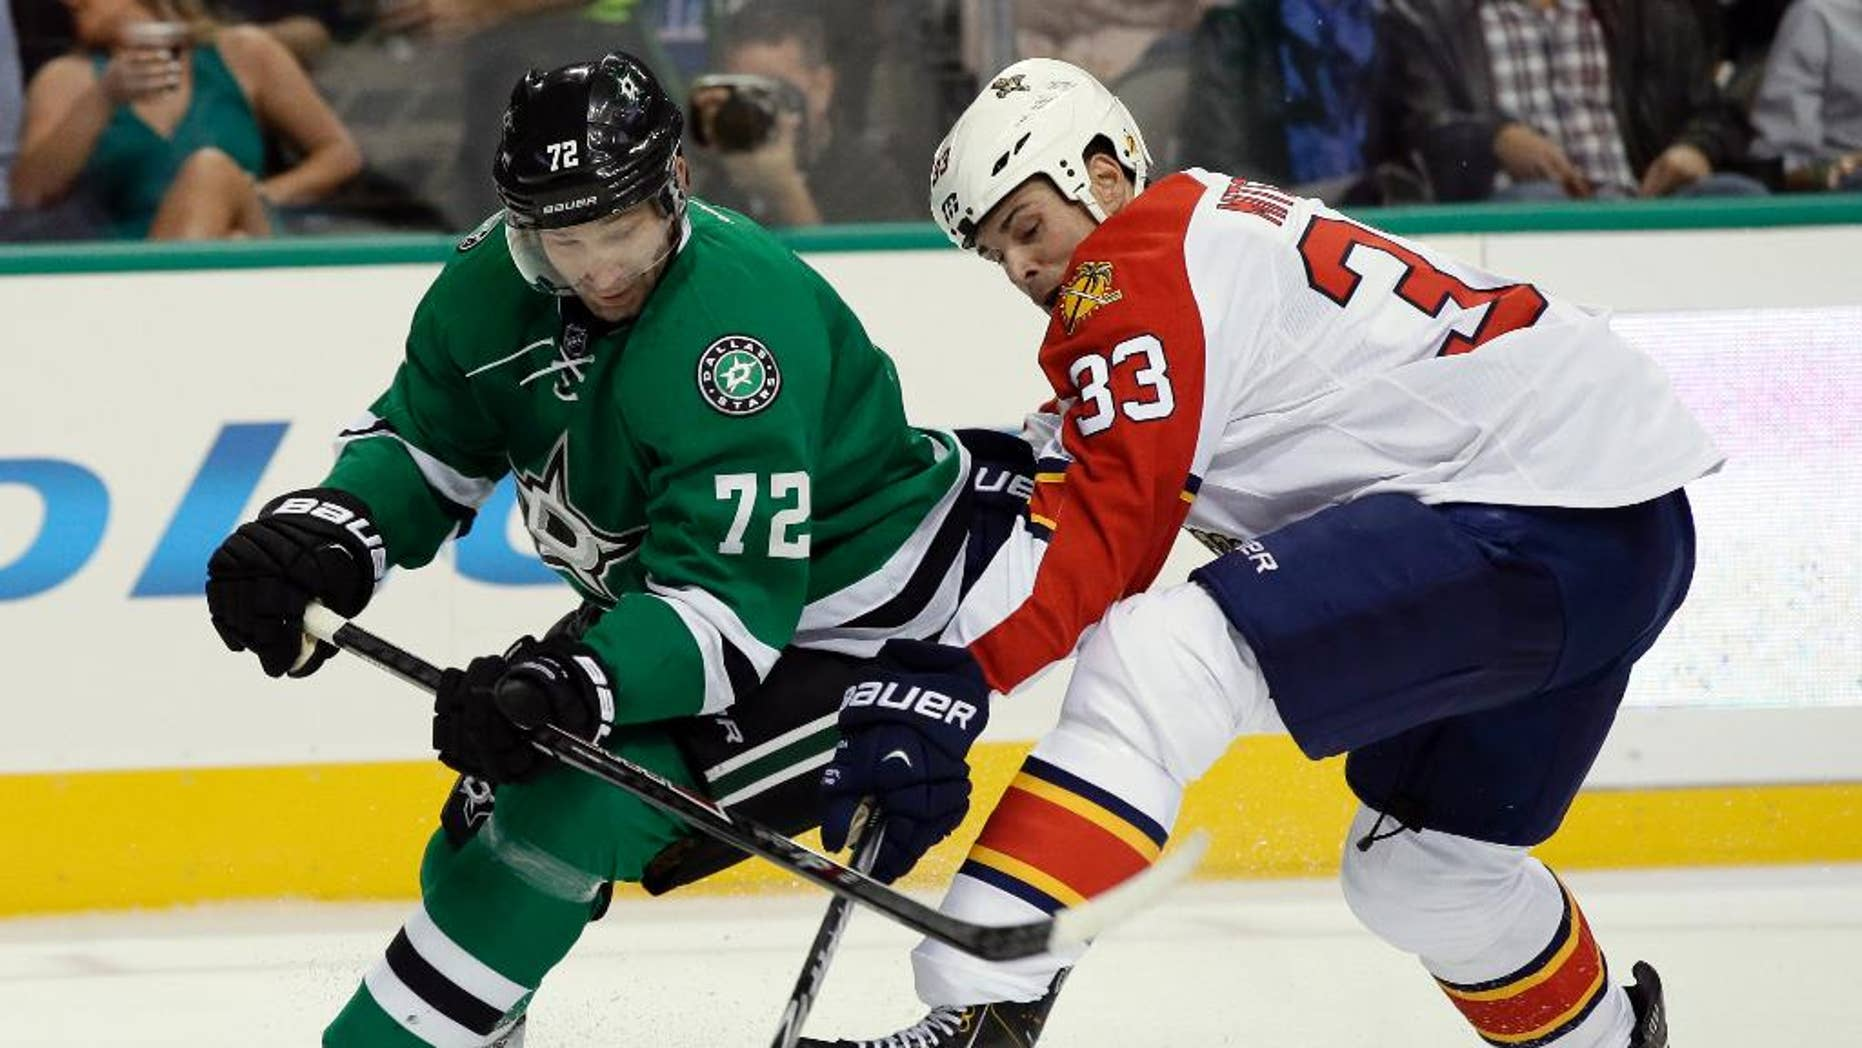 Dallas Stars' Erik Cole (72) and Florida Panthers' Willie Mitchell (33) compete for control of the puck in the first period of an preseason NHL hockey game, Monday, Sept. 29, 2014, in Dallas. (AP Photo/Tony Gutierrez)